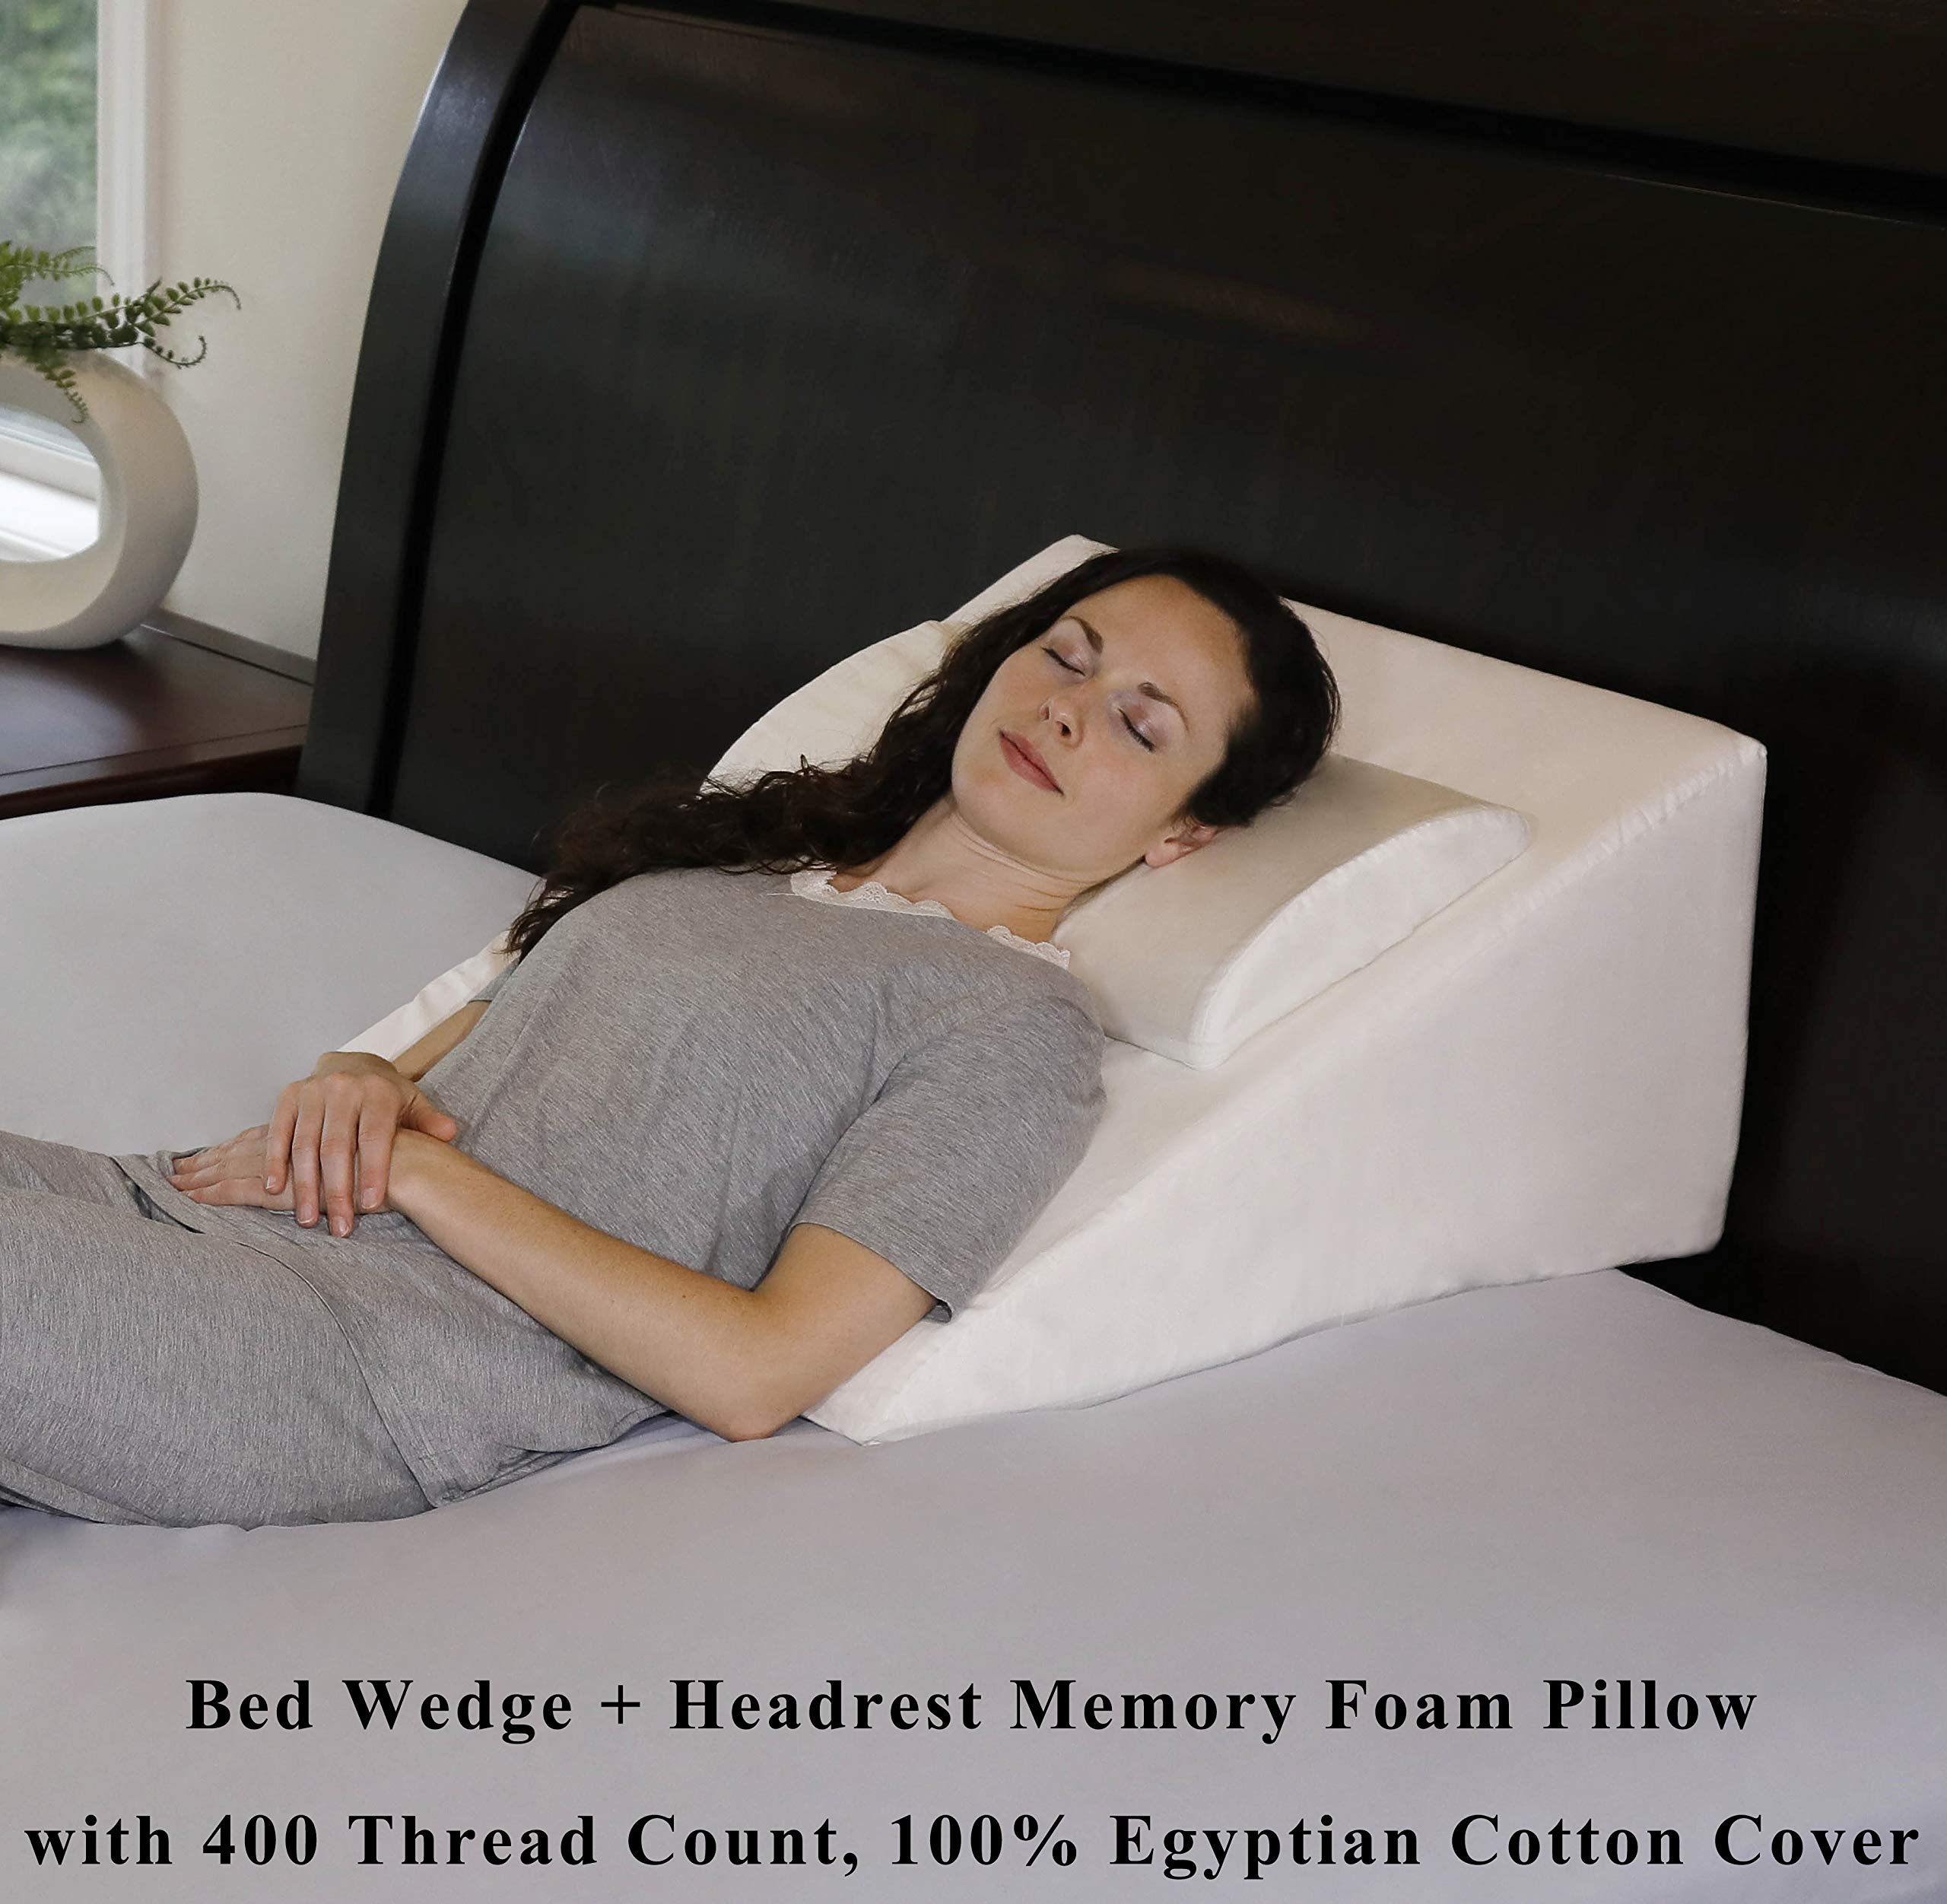 InteVision Foam Bed Wedge Pillow (25'' x 25'' x 12'') + Headrest Pillow in ONE Package - 2'' Memory Foam Top - 100% Egyptian Cotton Cover - Helps Relief from Acid Reflux, Post Surgery, Snoring by InteVision